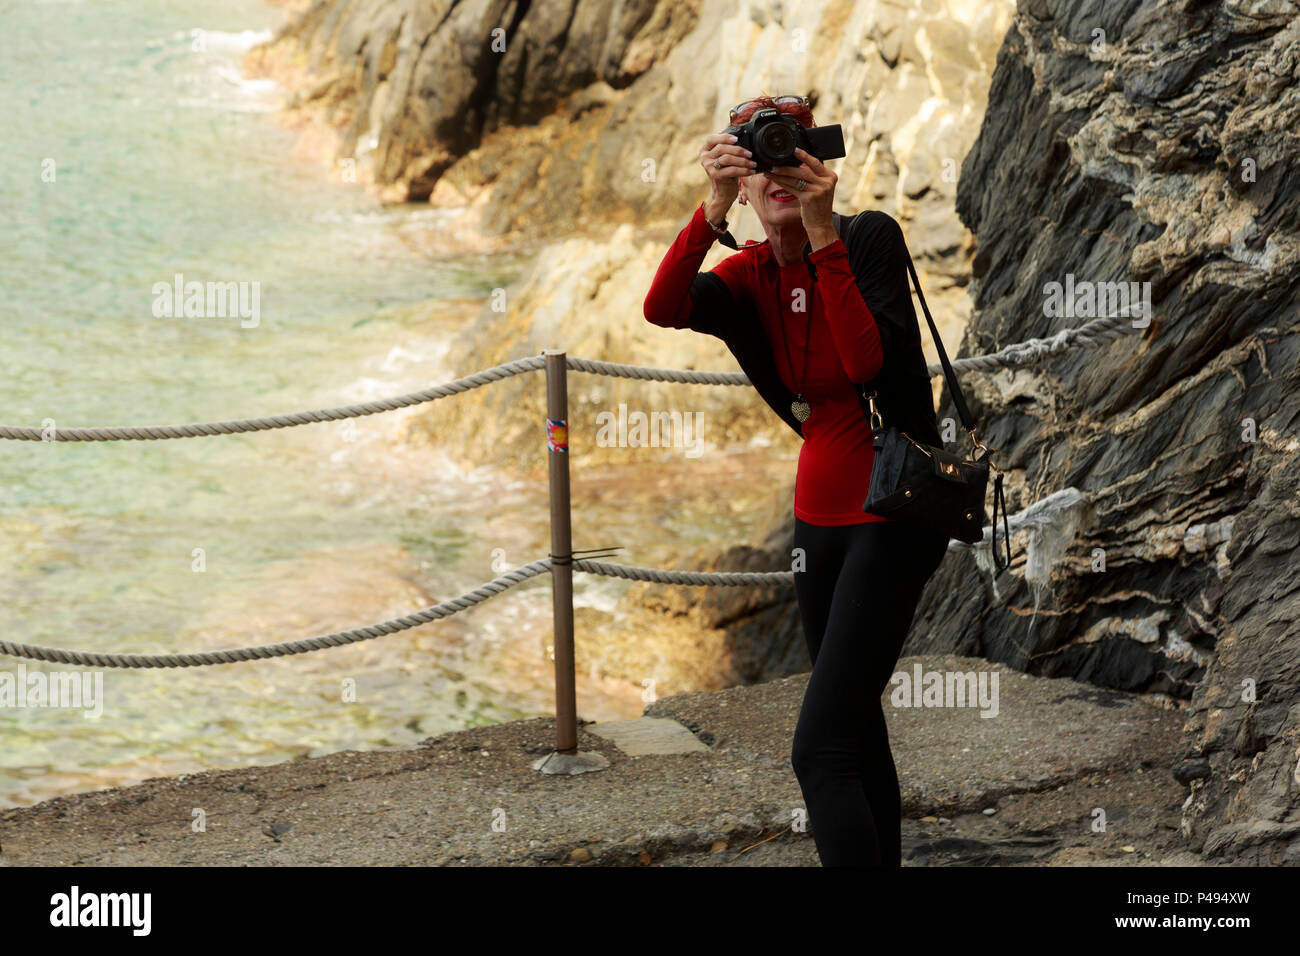 Woman tourist photographer-videographer candidly shooting against rocky seacoast background in Cinque Terre, Italy - Stock Image